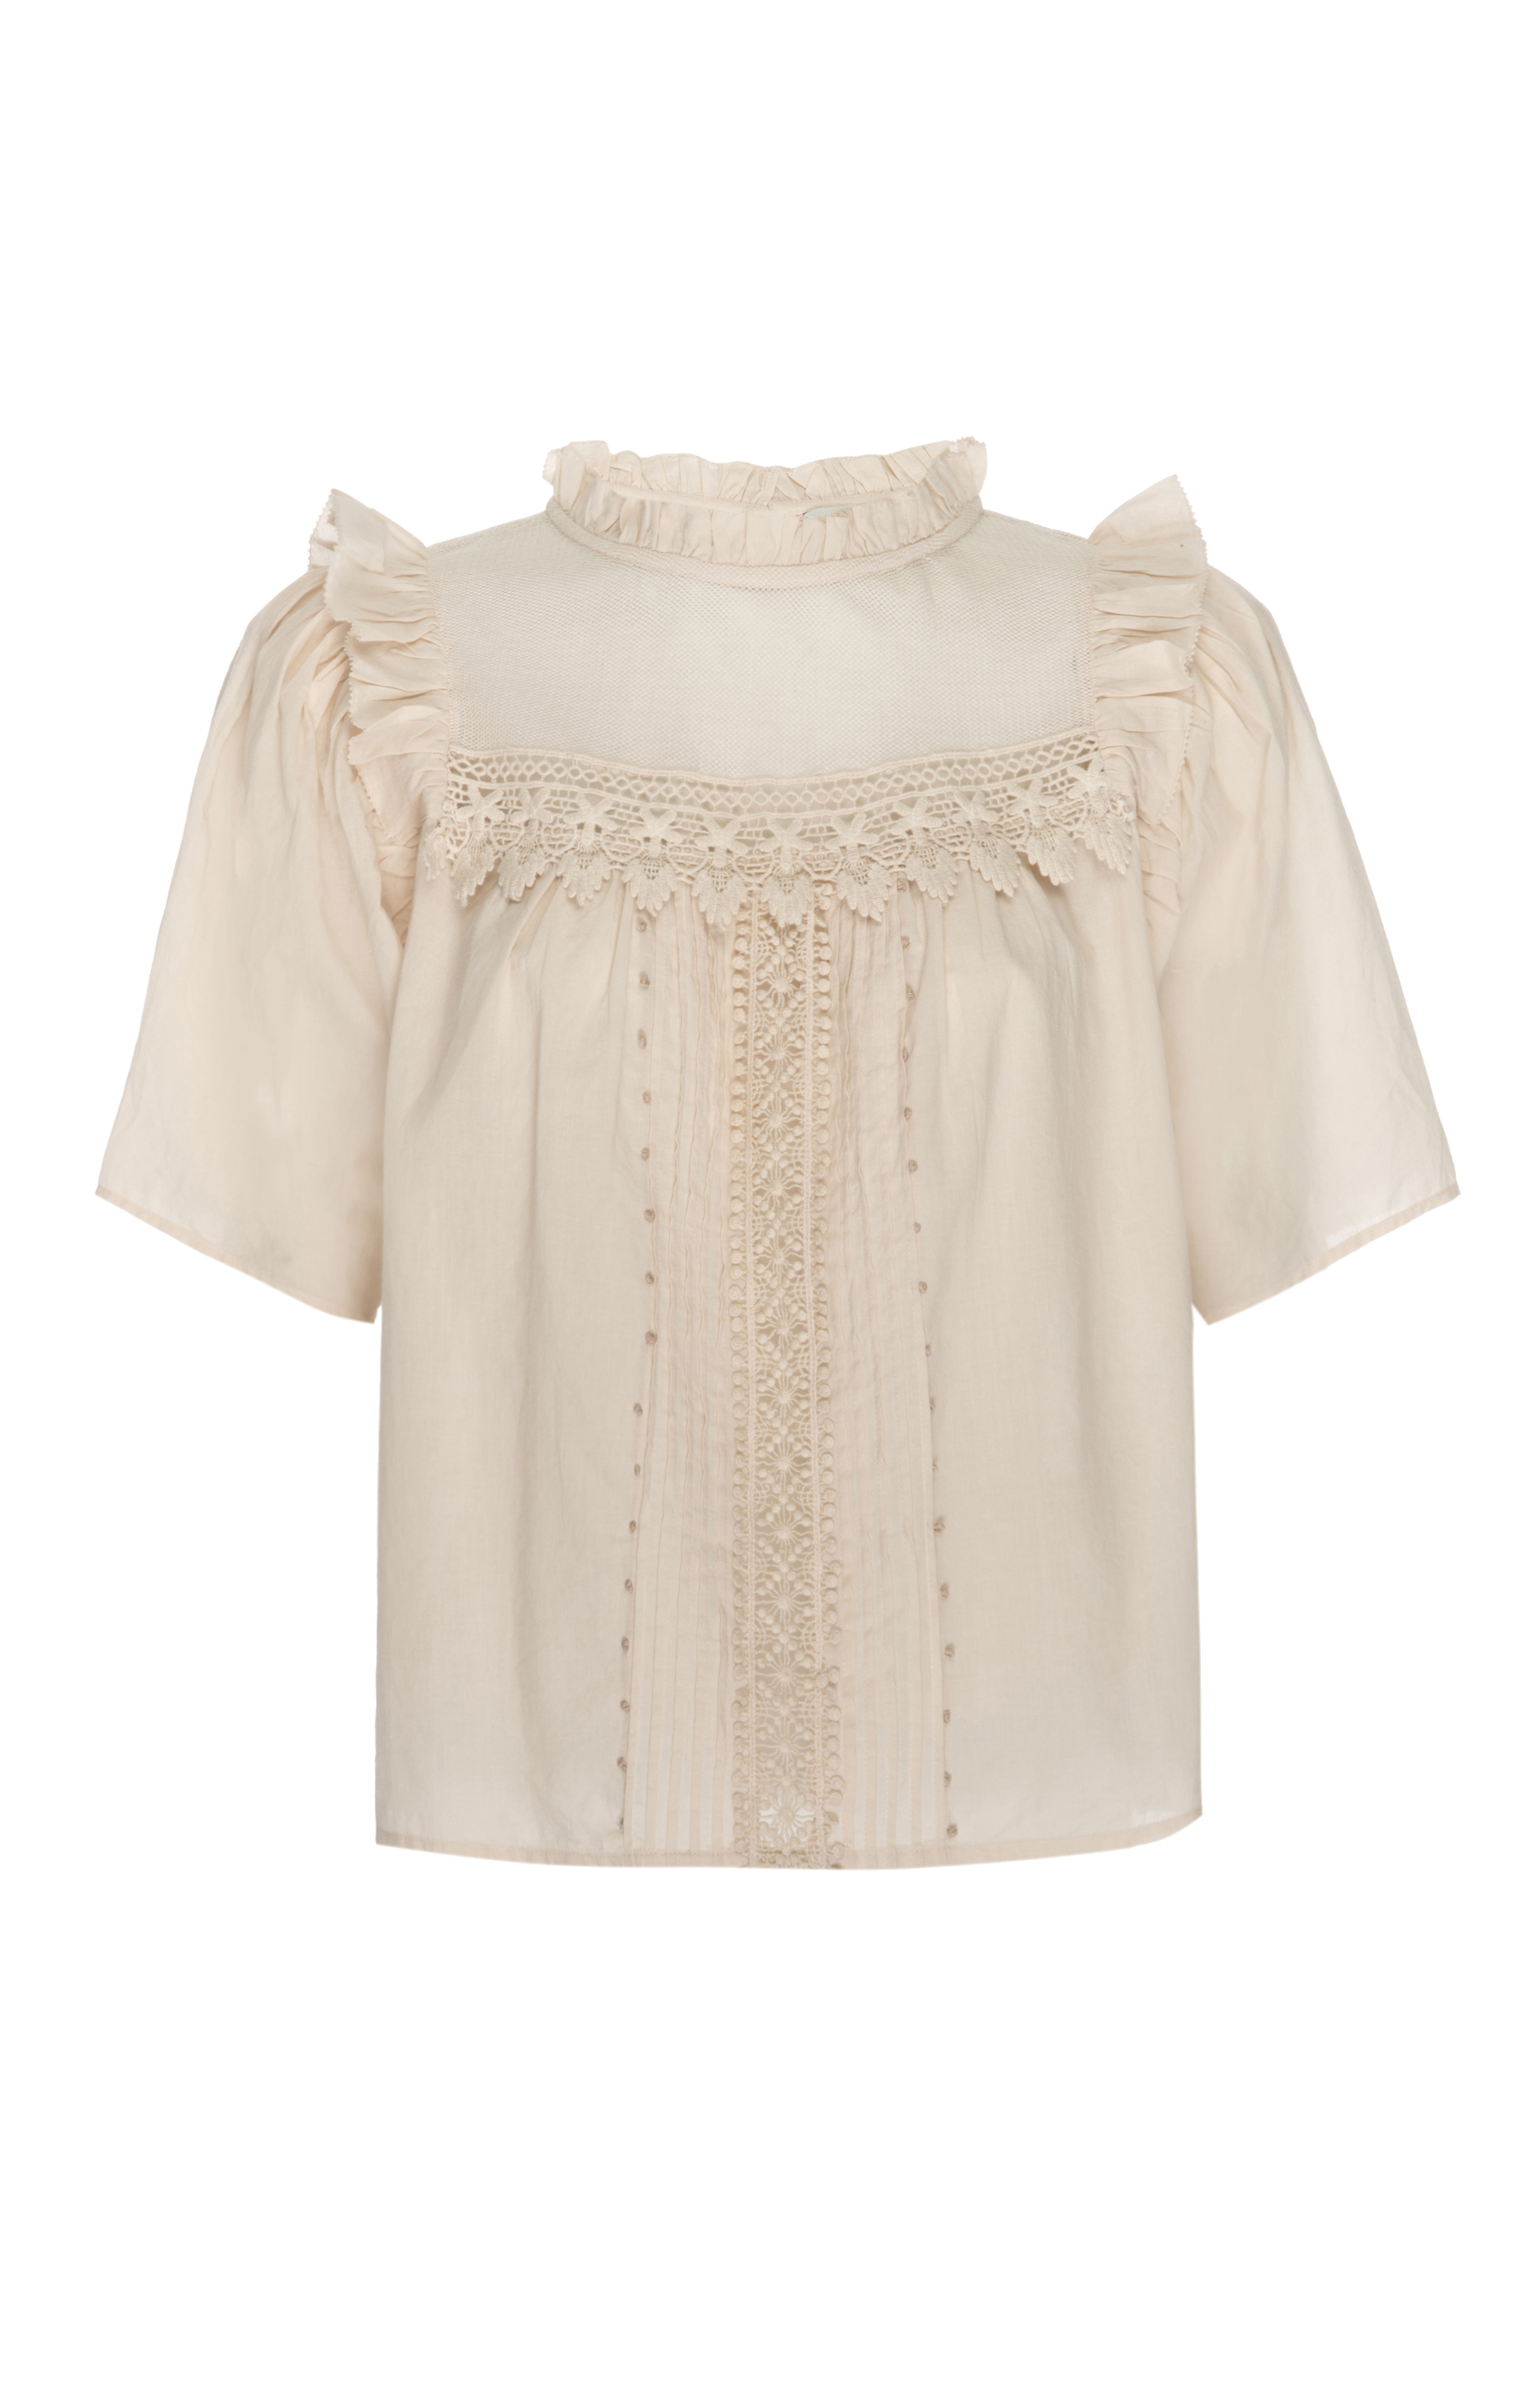 MAISIE TOP, ROSEWATER by St. Roche - 1